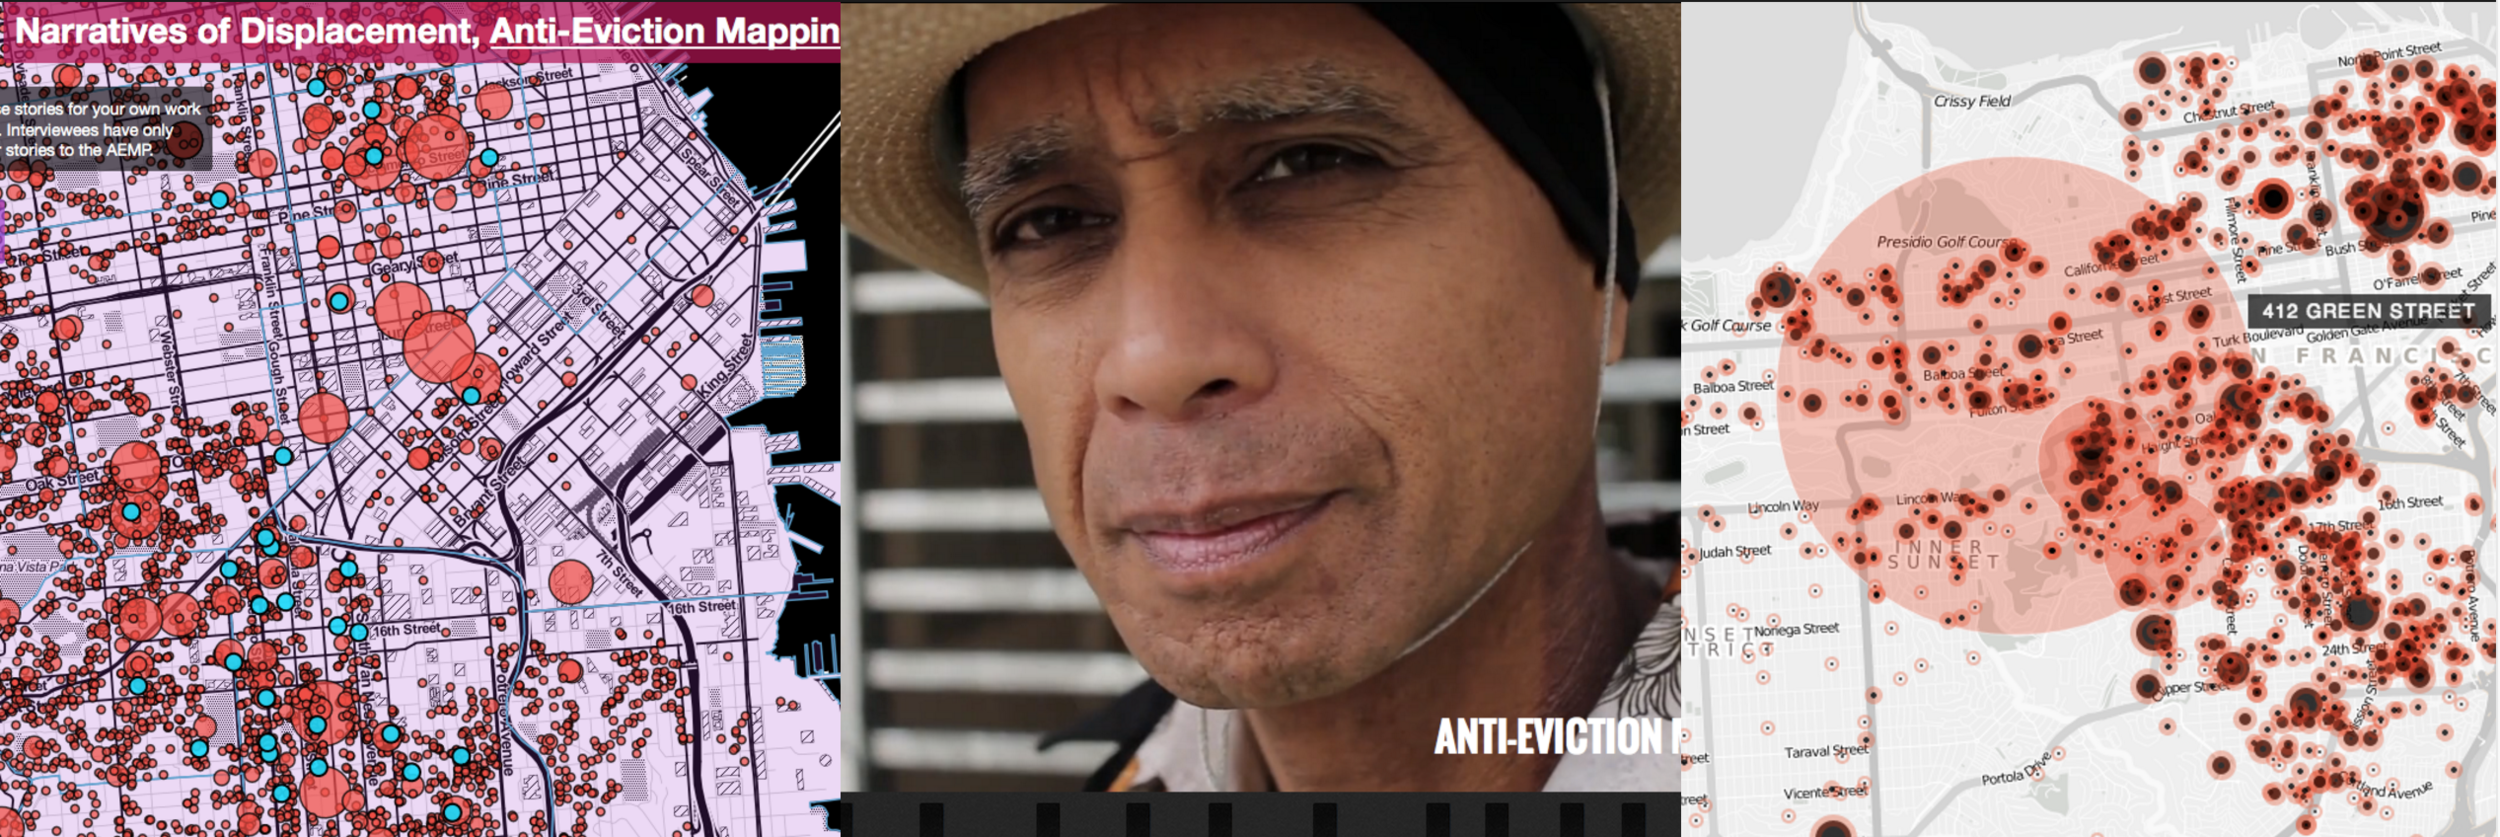 Photo: Anti-Eviction Mapping Project website